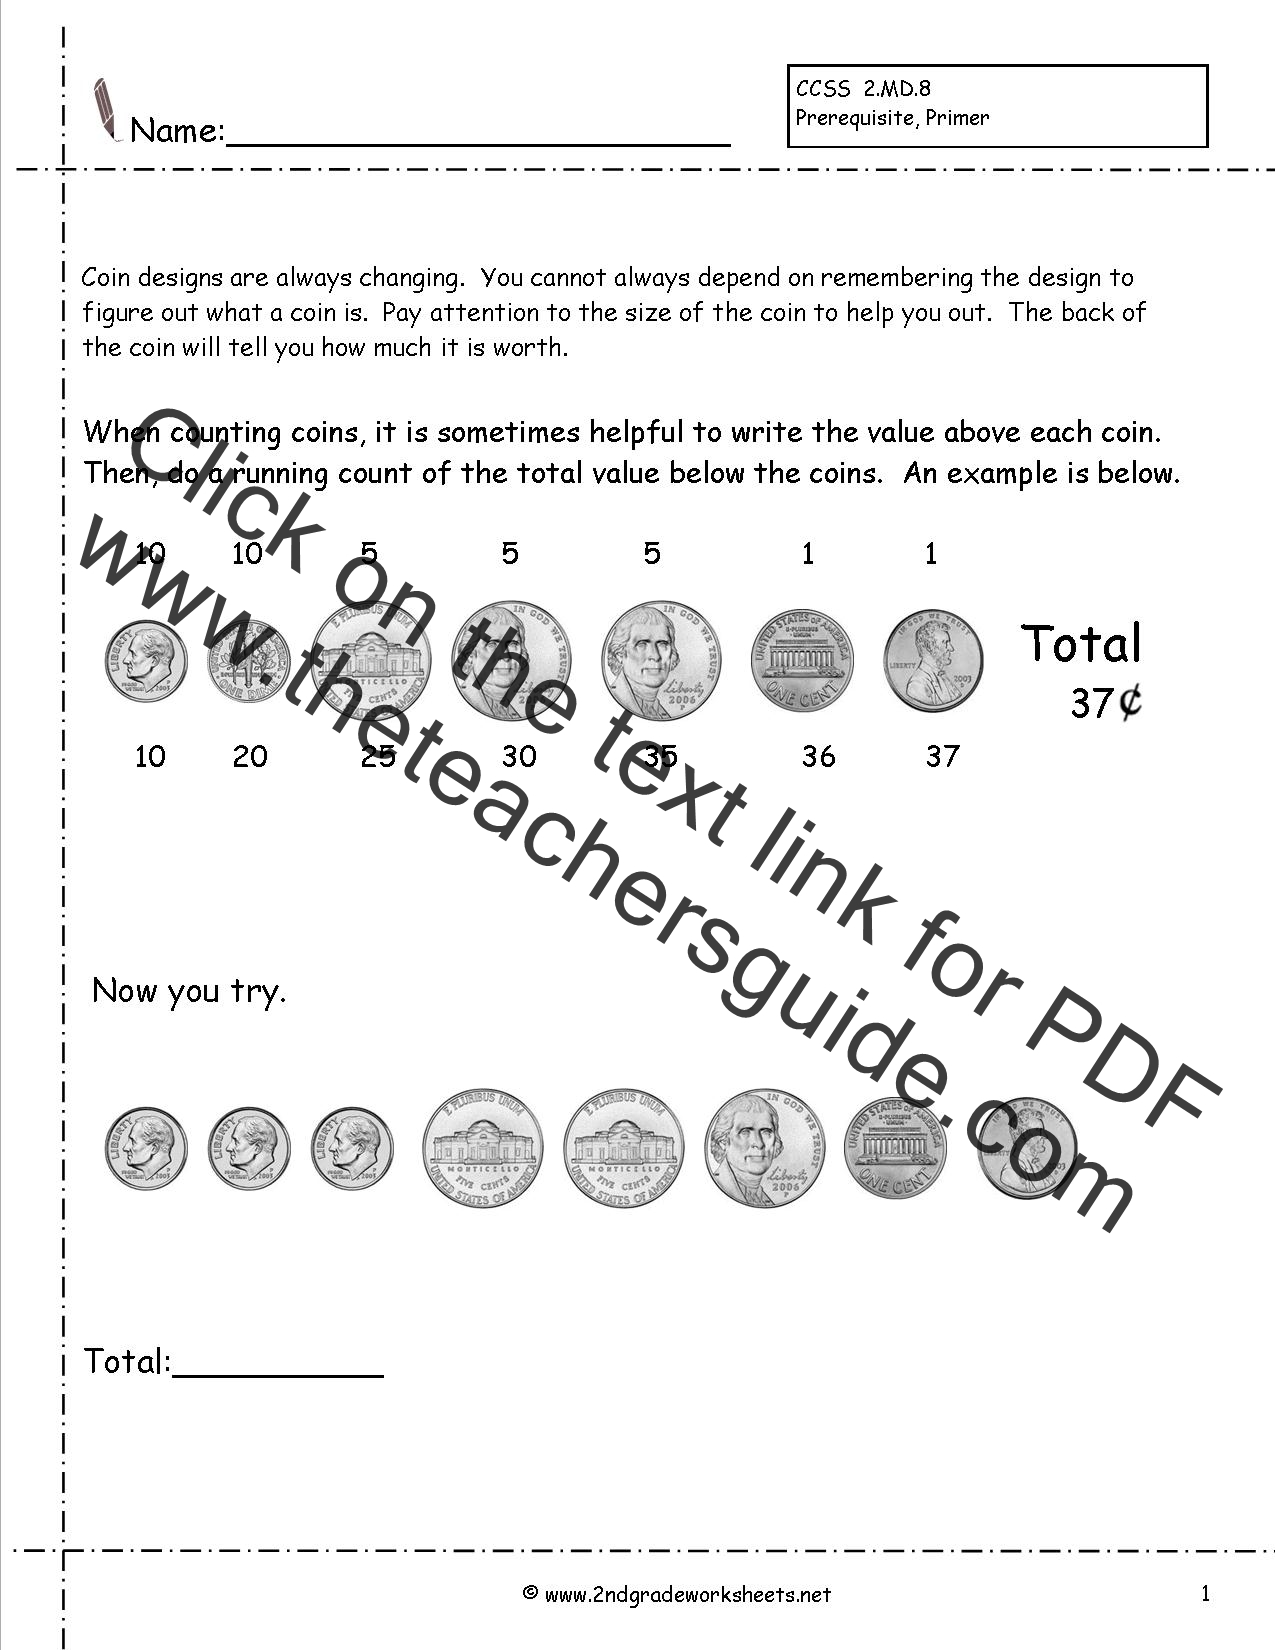 worksheet Add And Subtract Money ccss 2 md 8 worksheets counting coins money practice worksheet